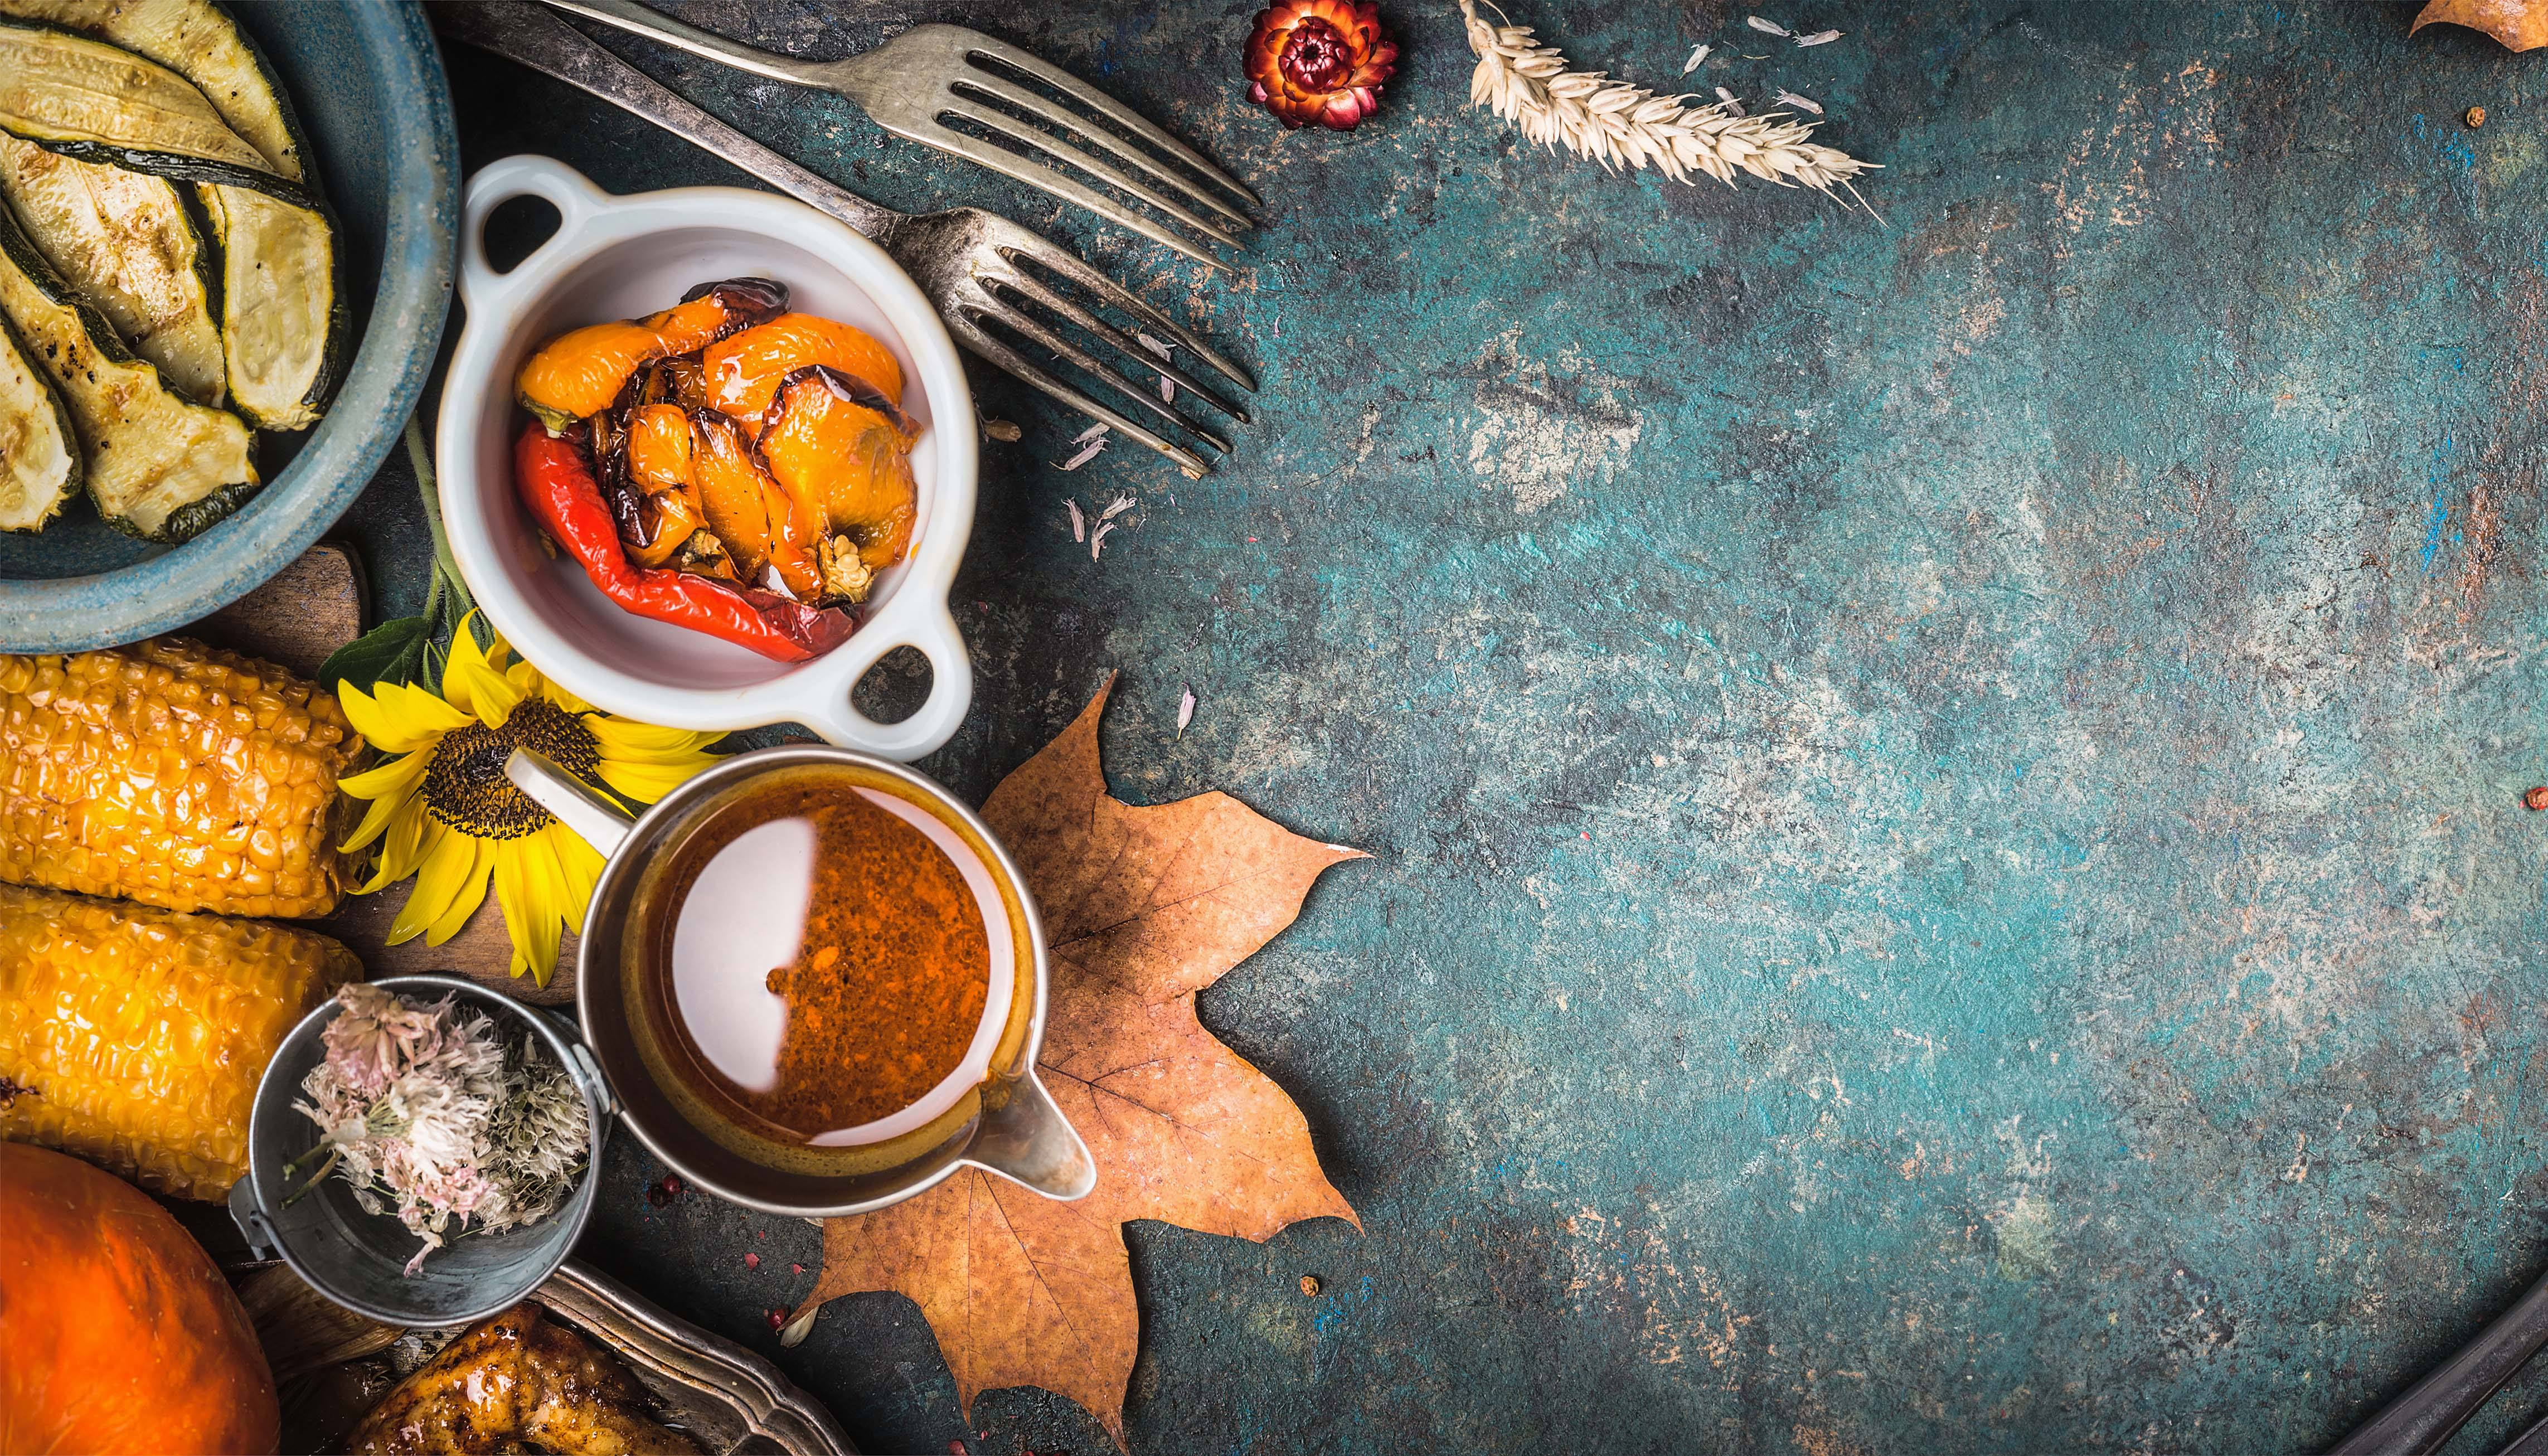 Table with fall leaves and foods